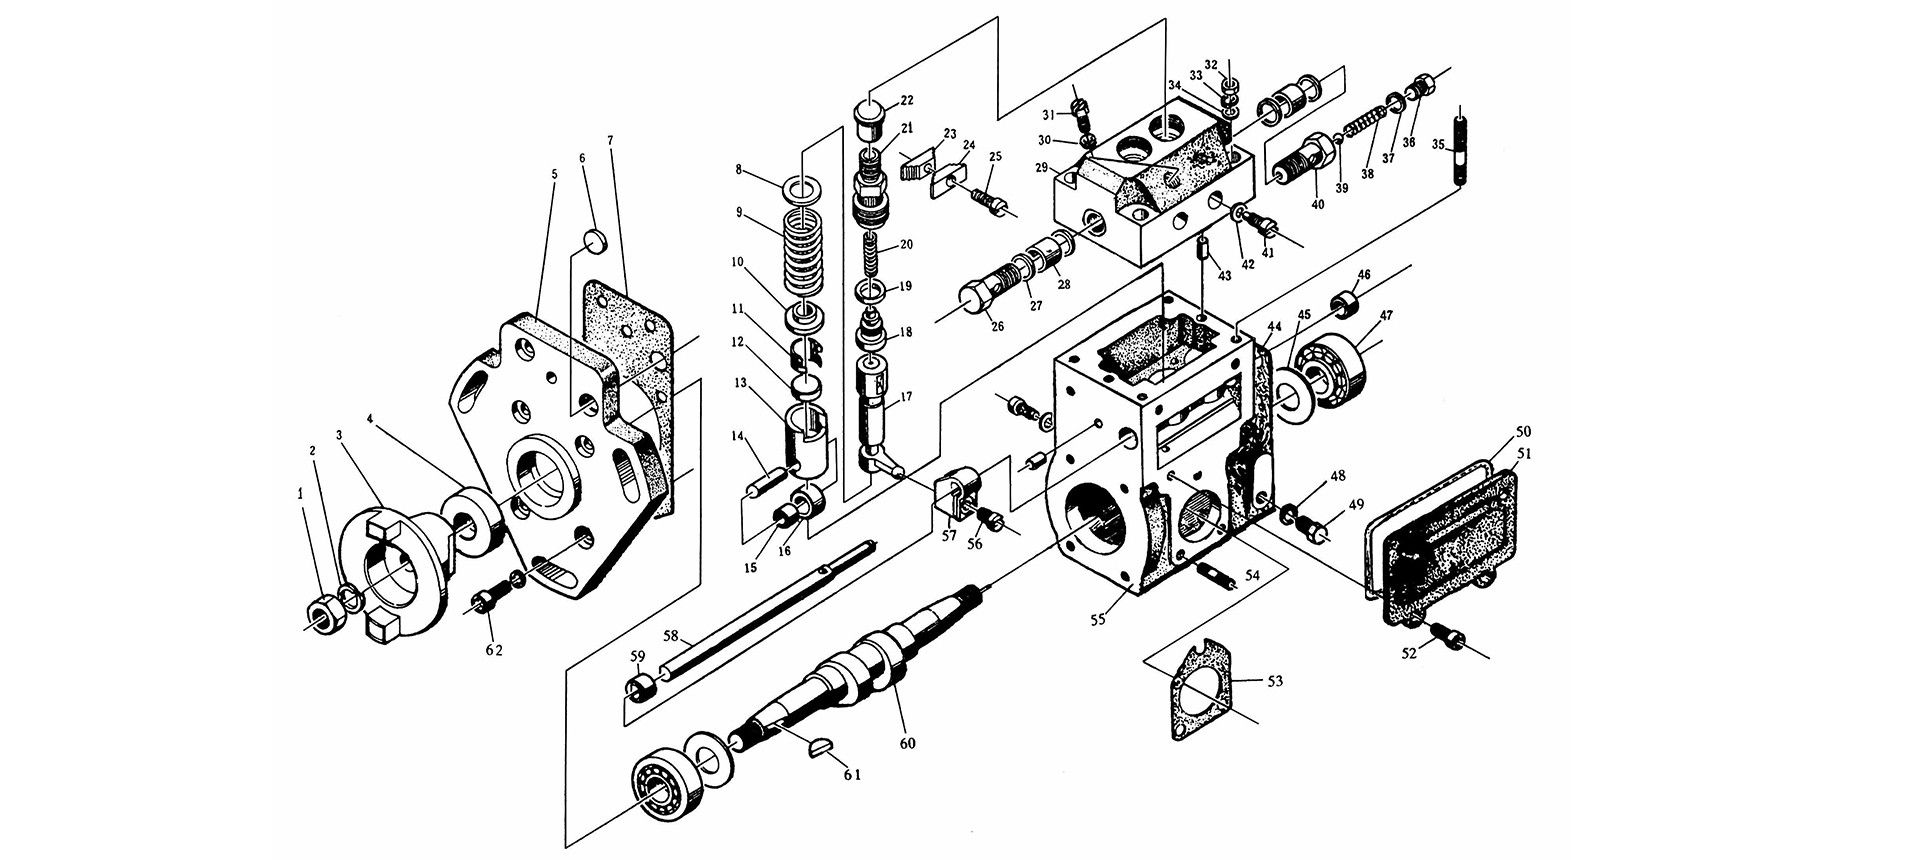 Jinma Fuel Injection Pump Diagram Trusted Wiring Diagrams Cav On Perkins Ty290 Engine 180 Tractor Pinterest Heating